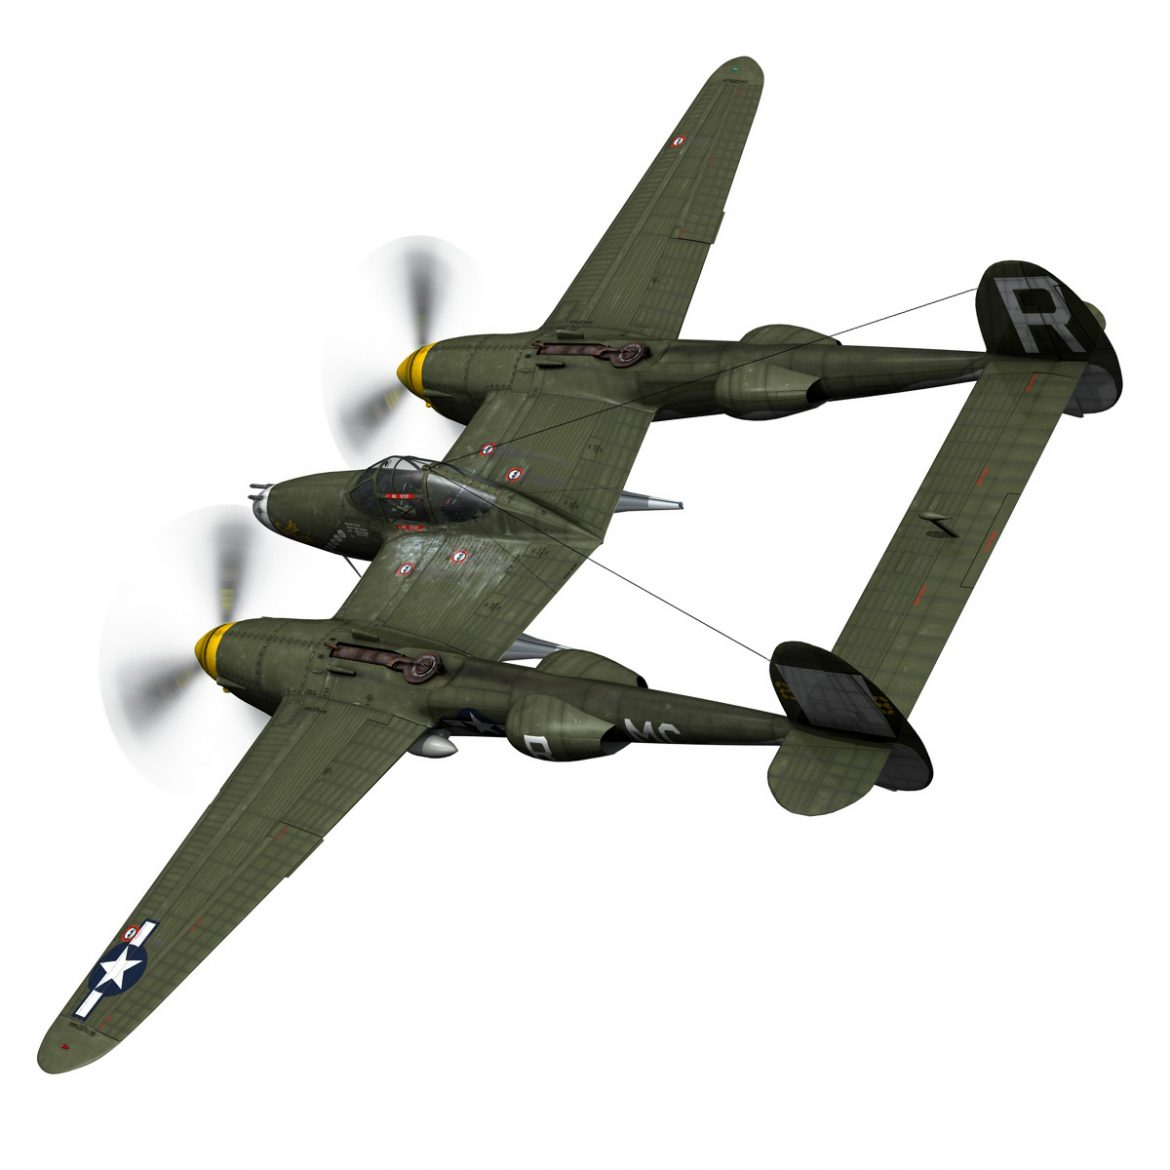 lockheed p-38 lightning – gentle annie 3d model fbx c4d lwo obj 300083